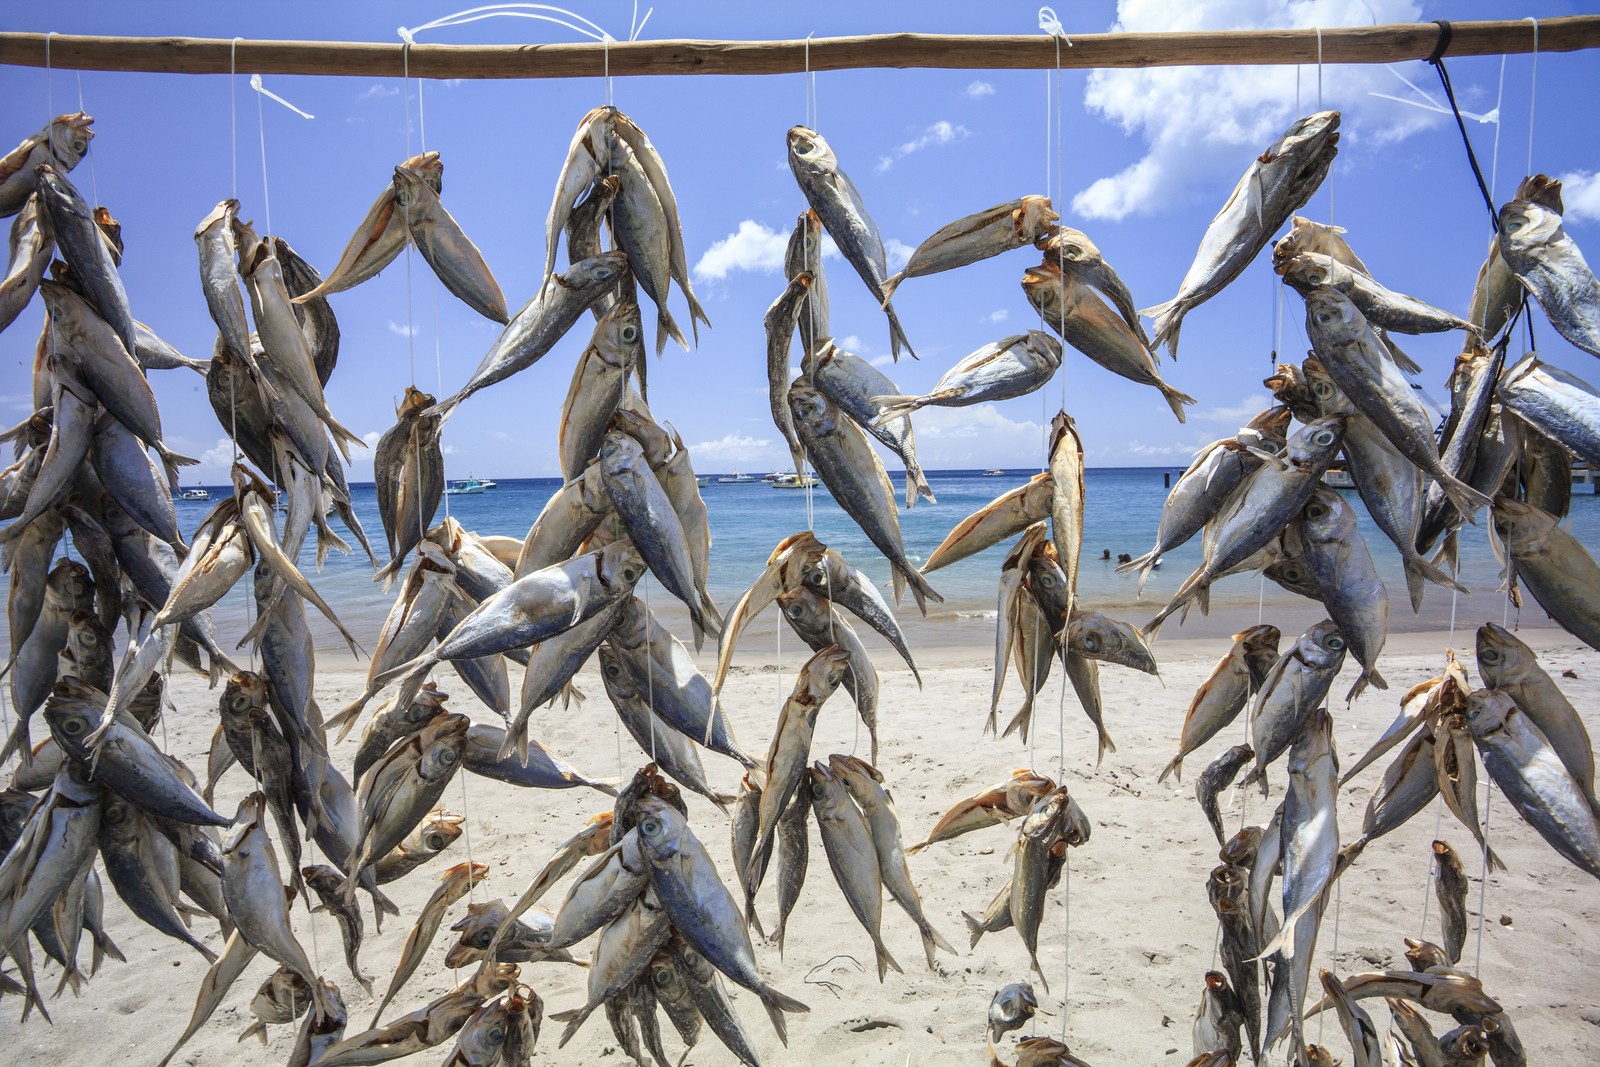 Saltfish drying on the beach at Gouave